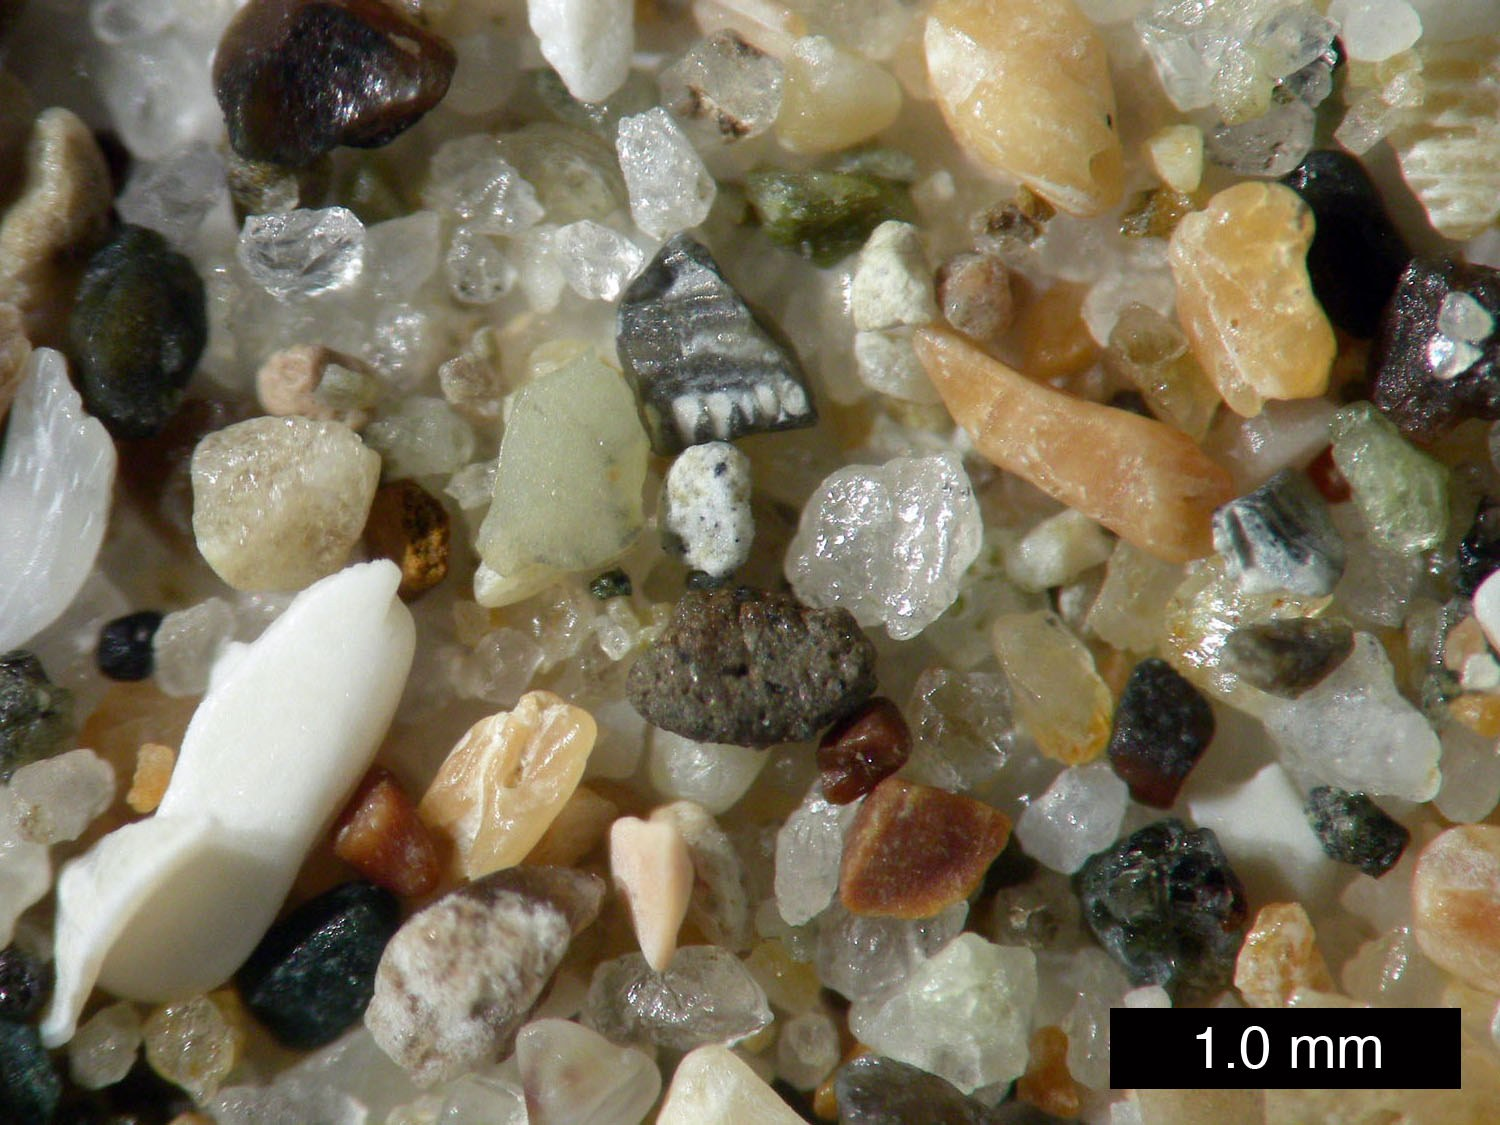 close up of individual grains of sand